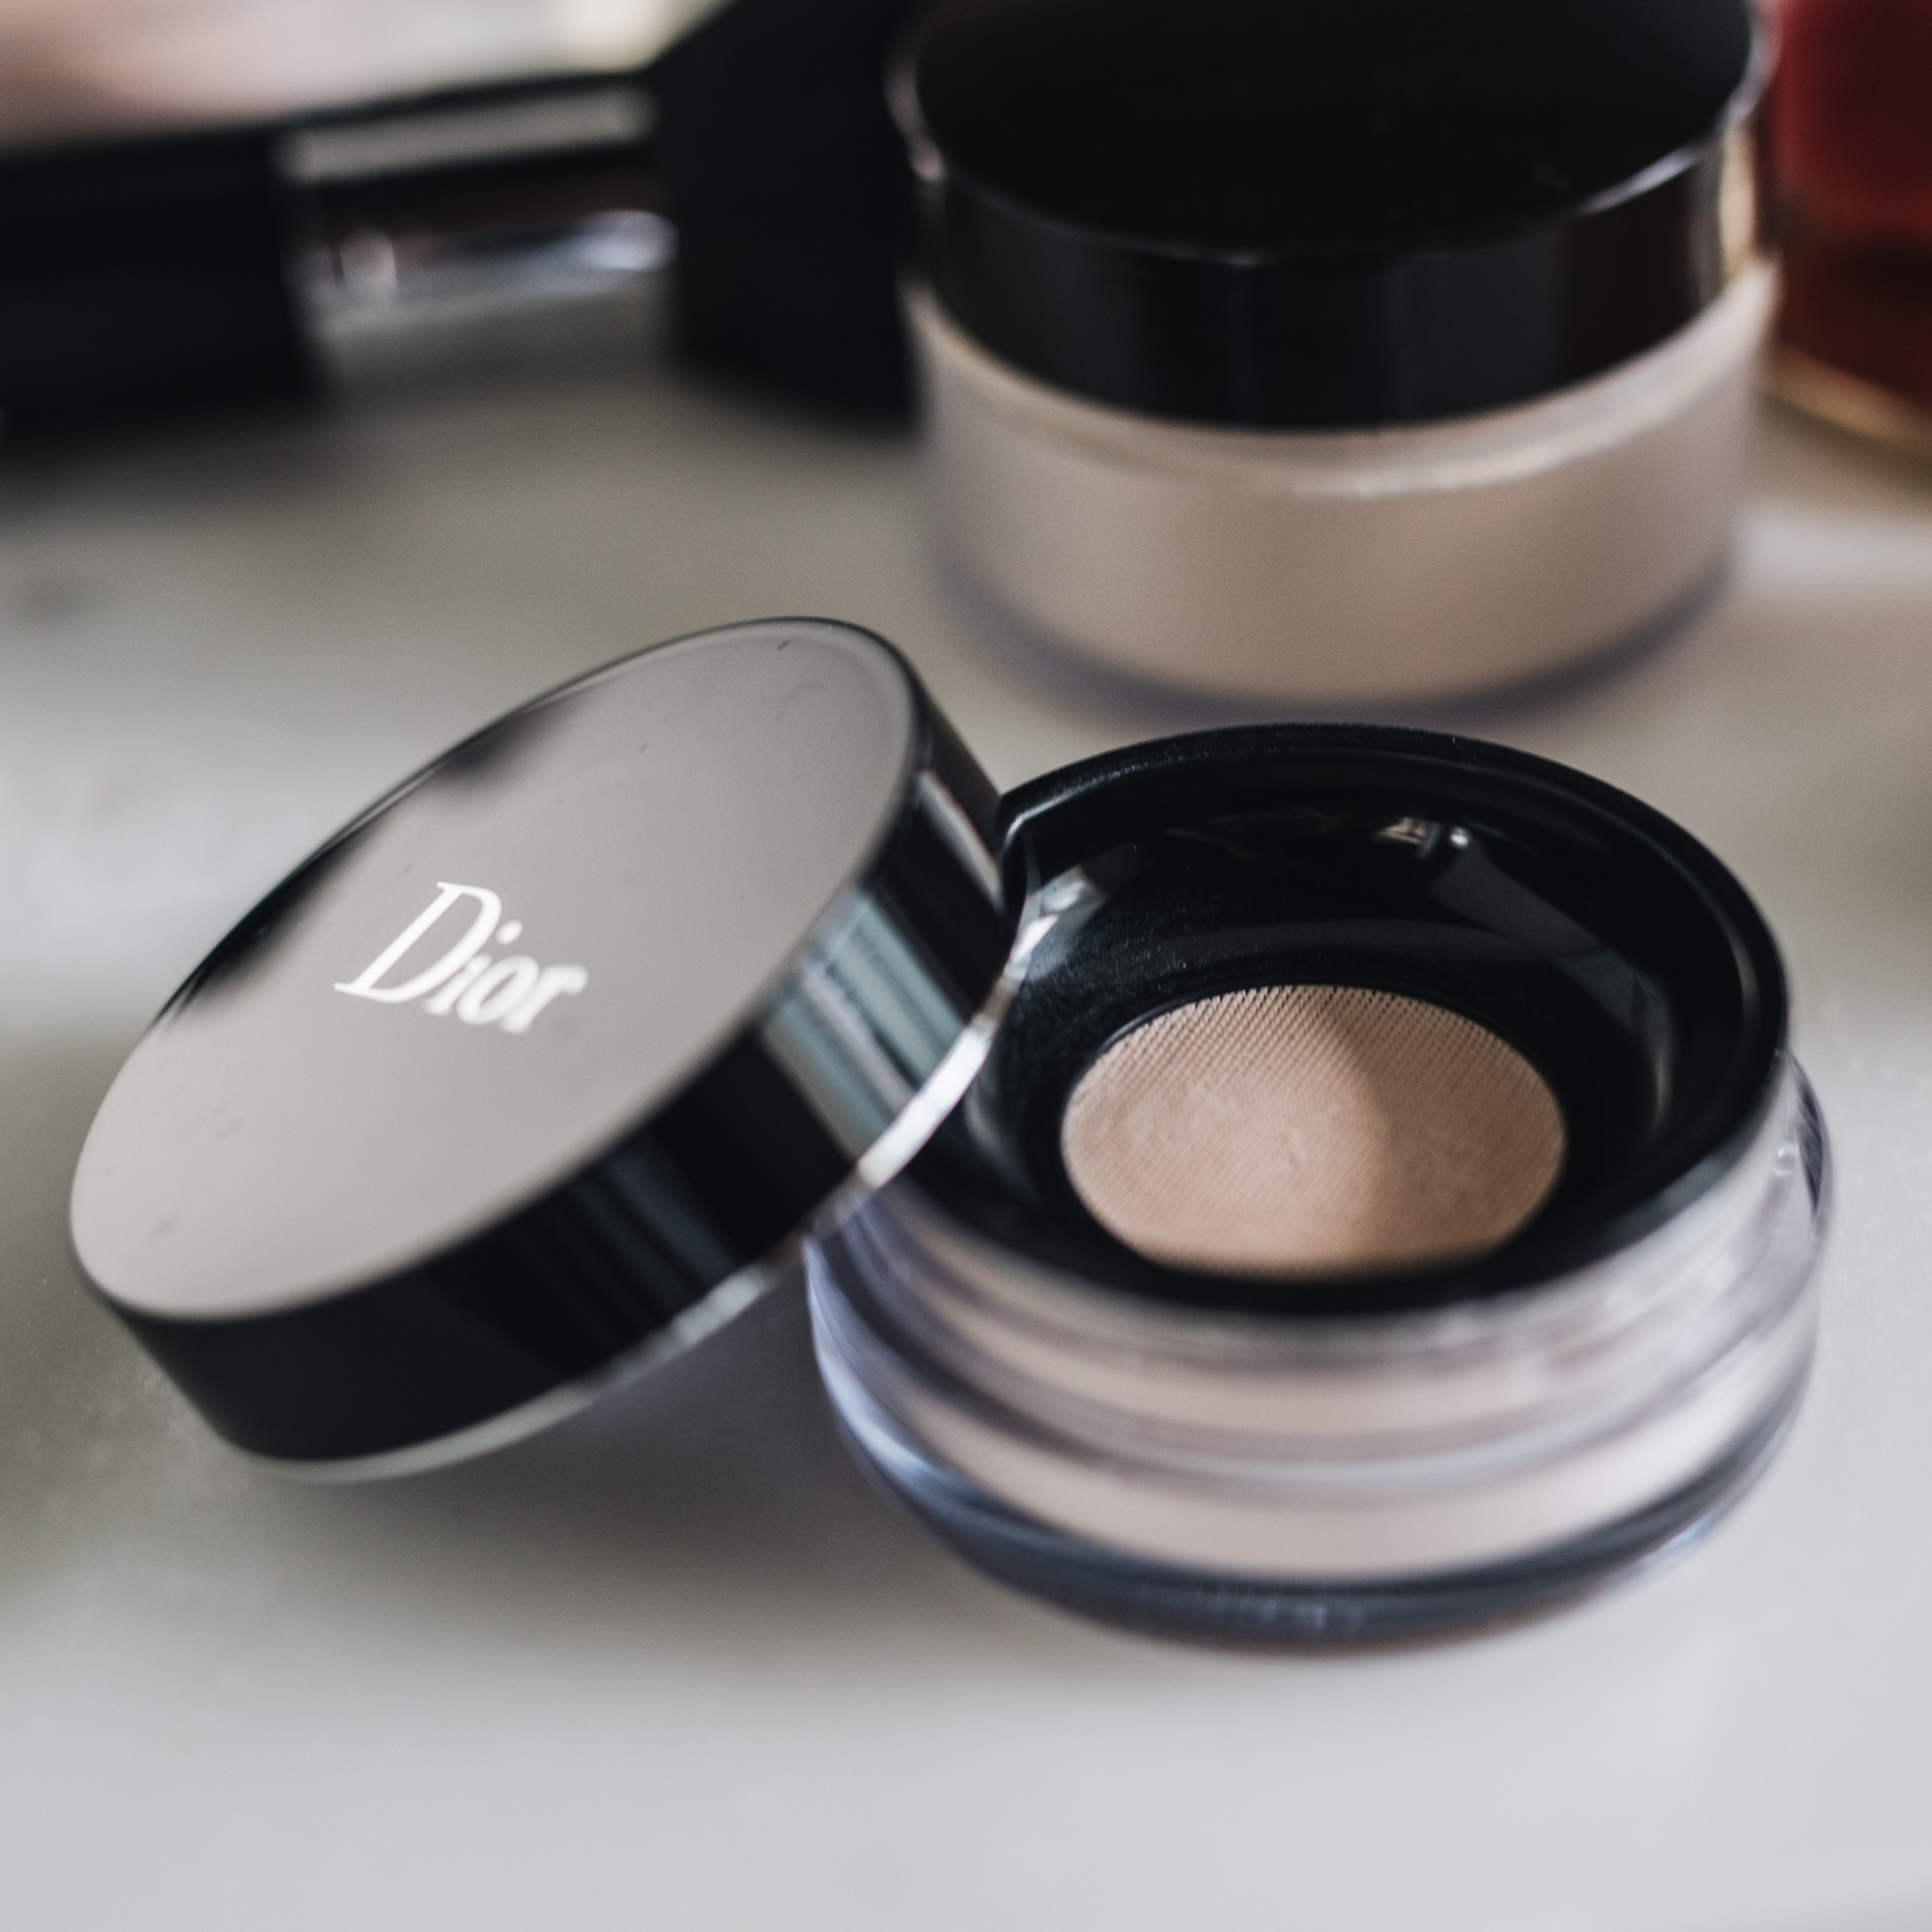 Dior - Skin Forever & Ever Control Invisible Setting Powder